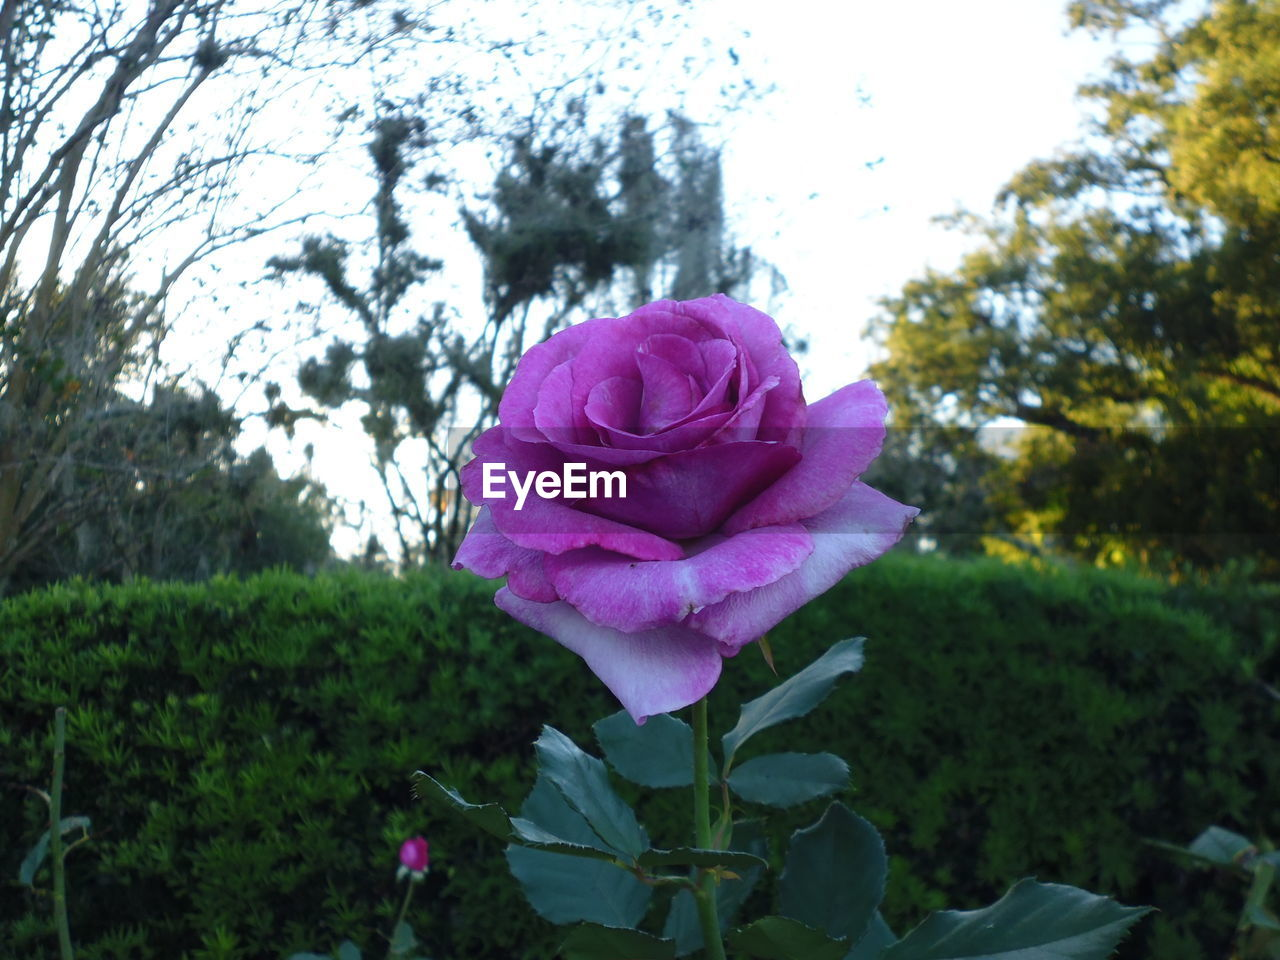 flower, nature, petal, beauty in nature, plant, growth, fragility, focus on foreground, flower head, blooming, no people, outdoors, rose - flower, day, freshness, pink color, close-up, leaf, tree